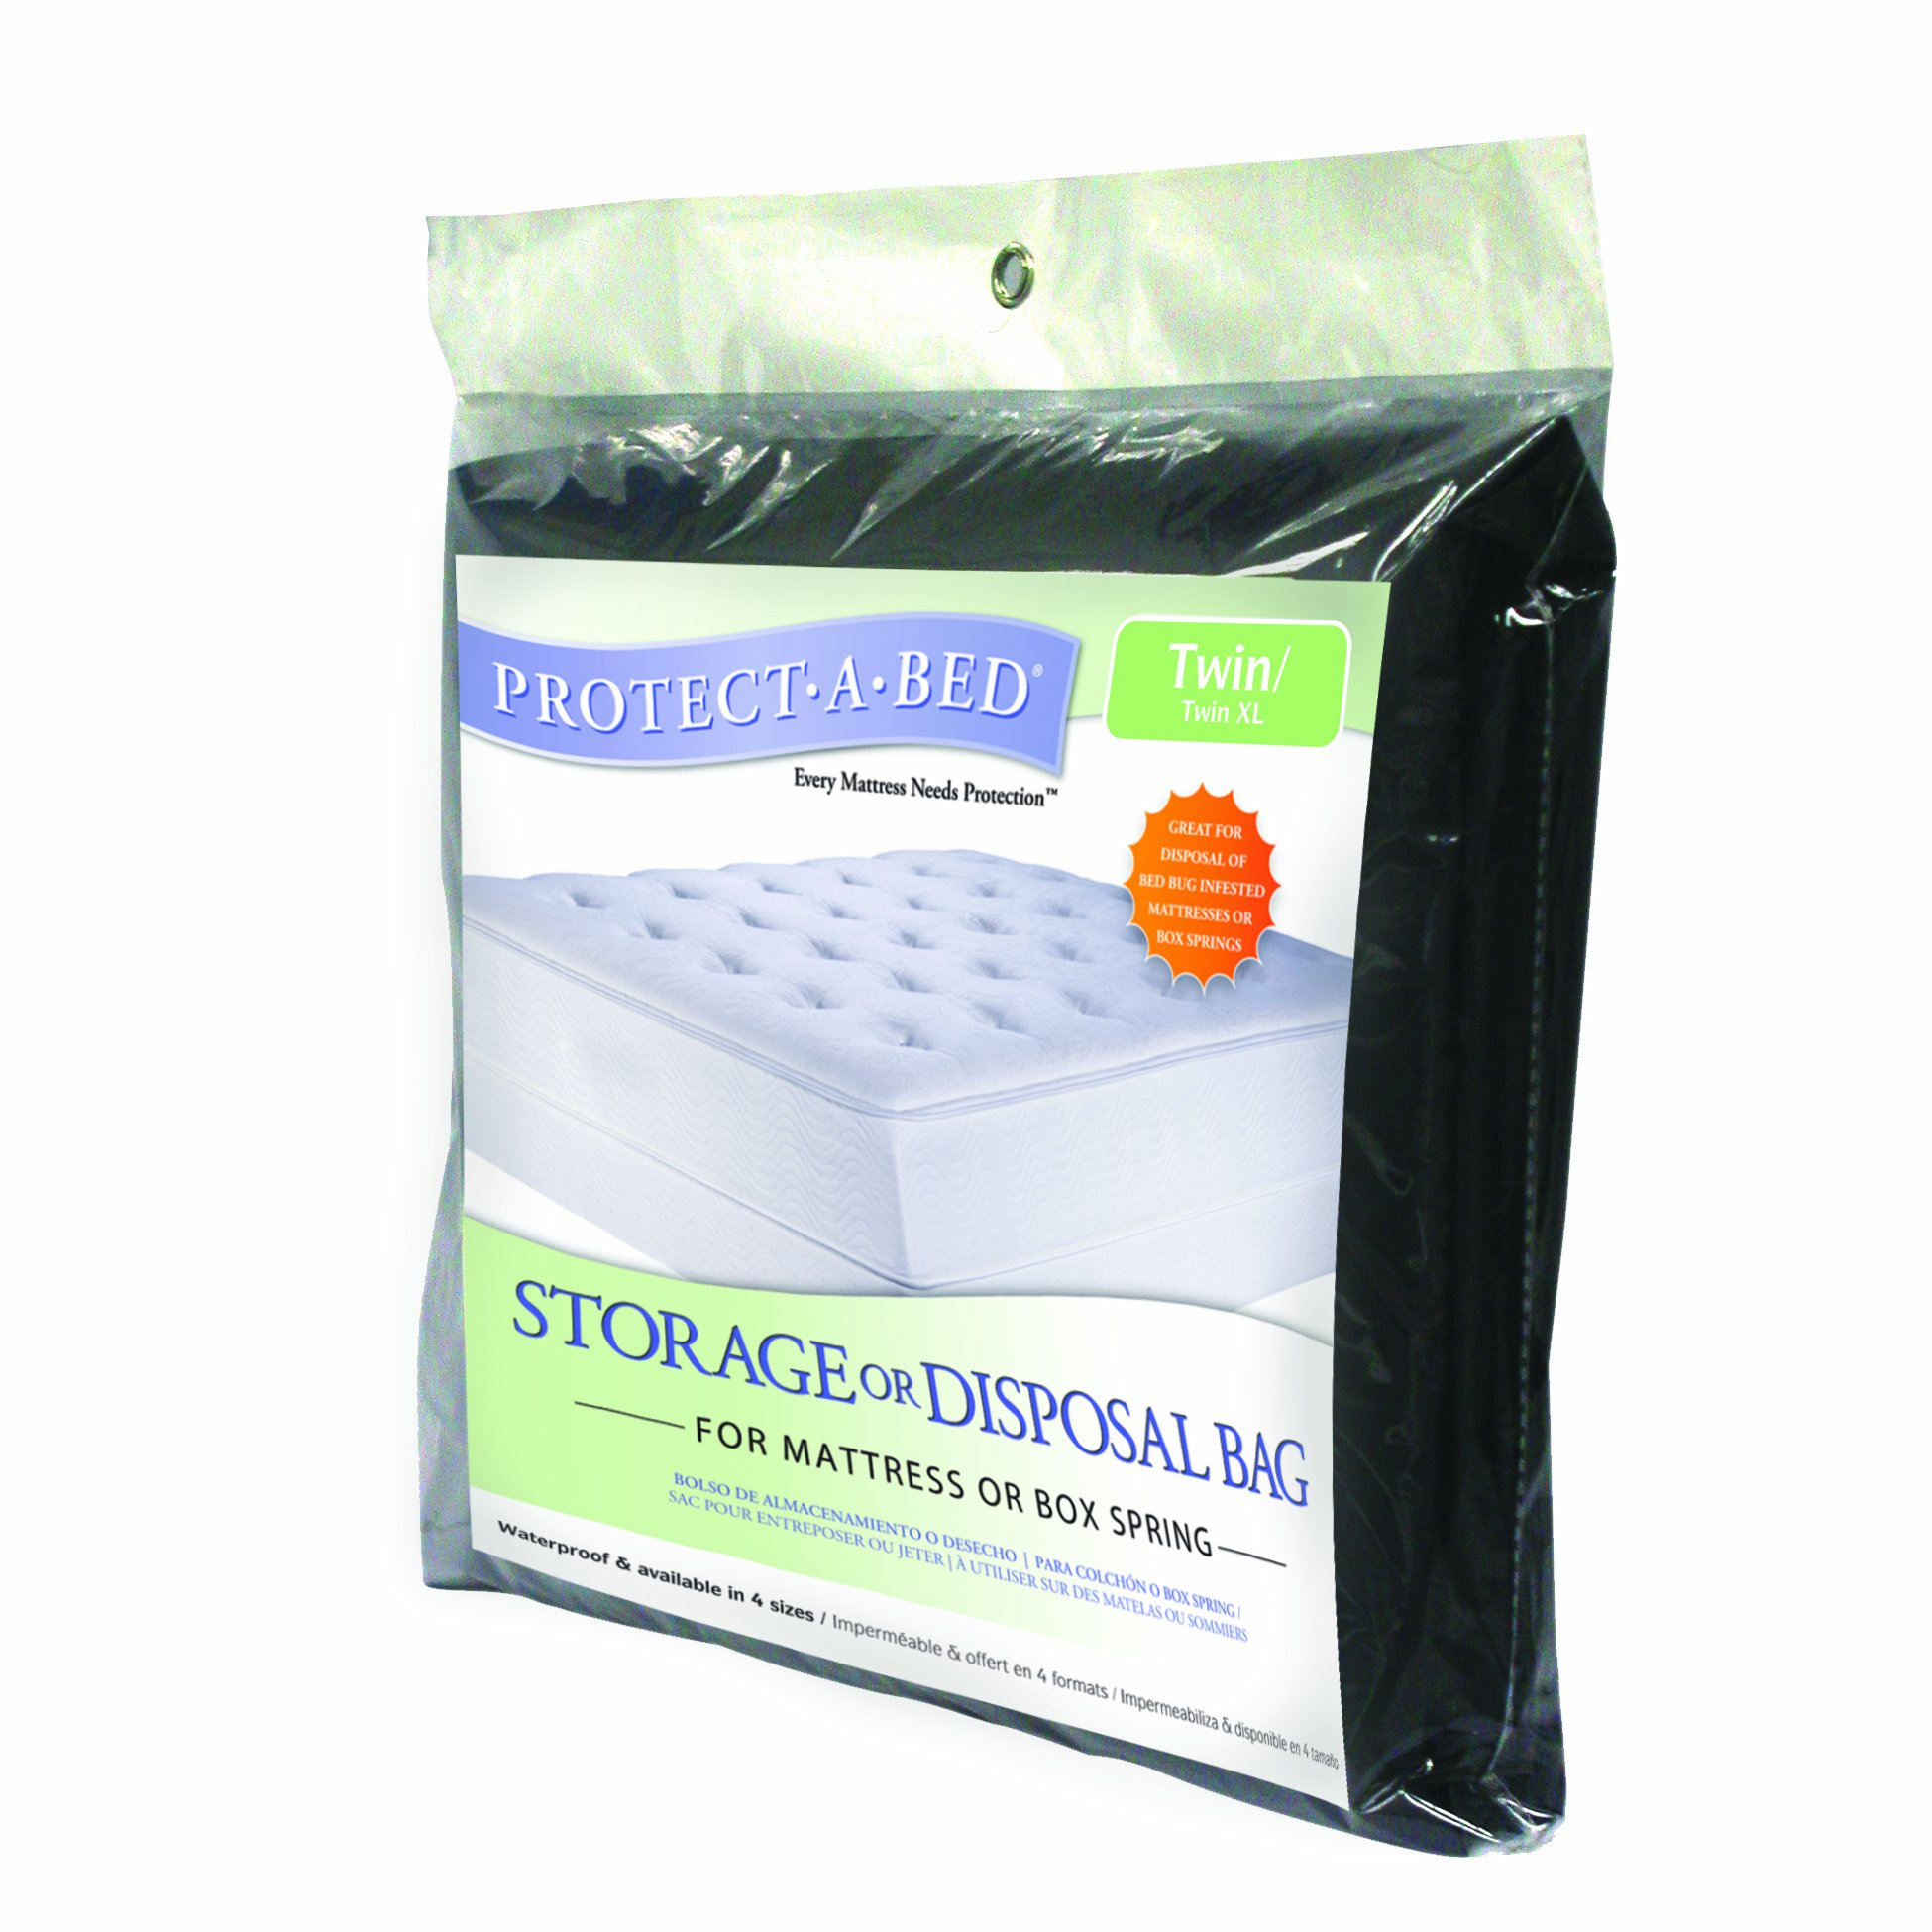 Protect-A-Bed DB001LG Storage or Disposal Bag for Mattress or Box Spring, Twin/Twin X-Long